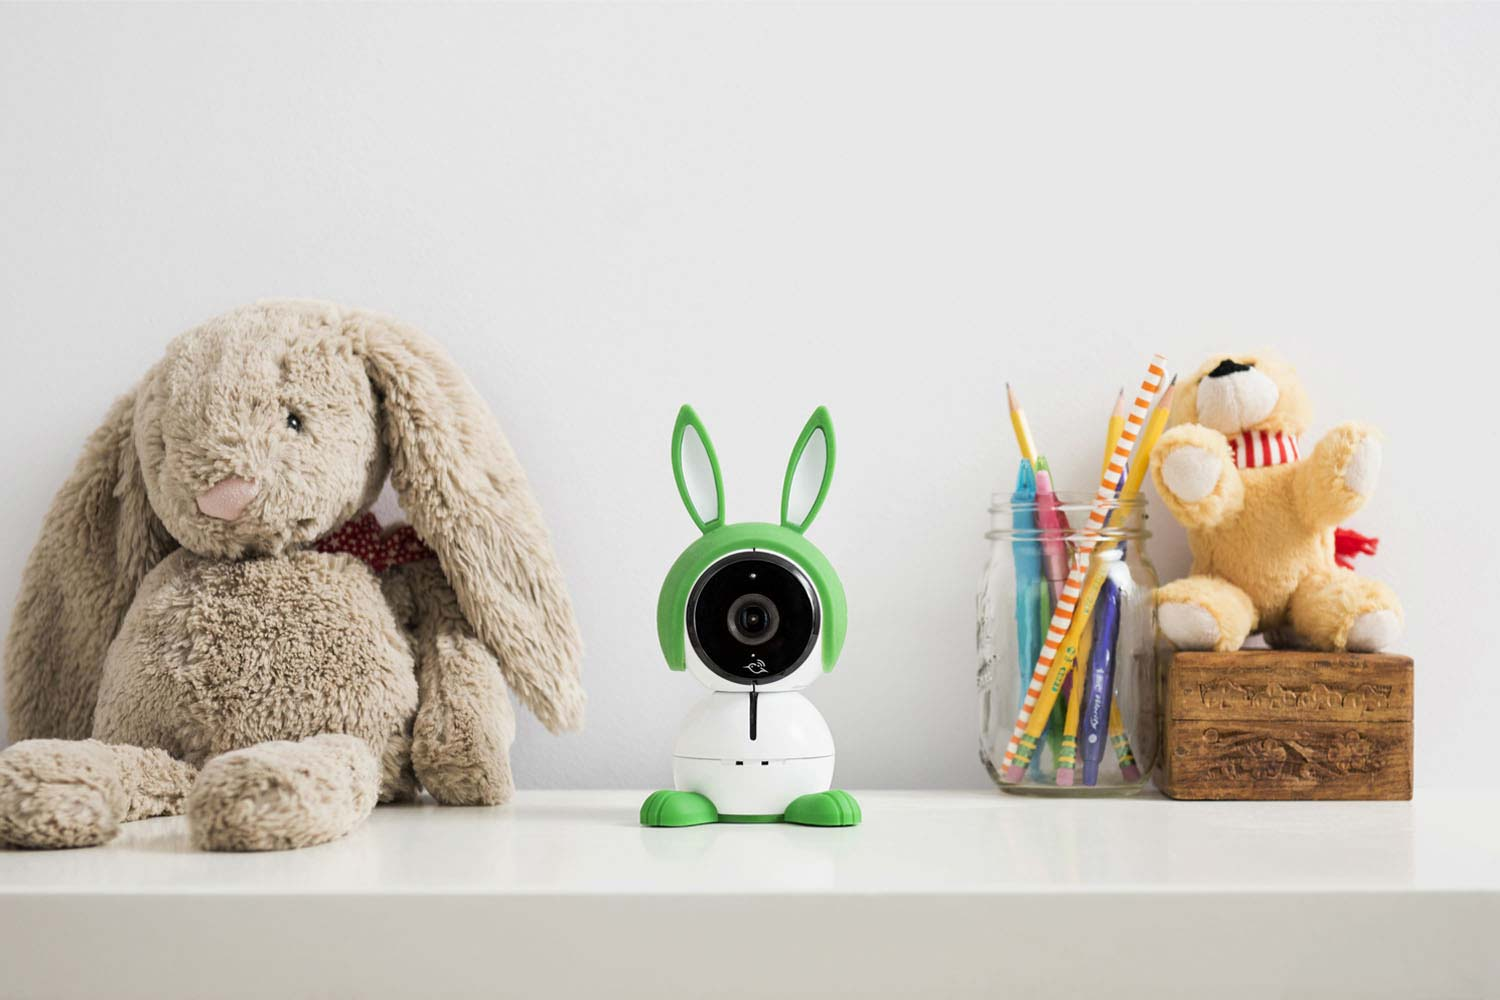 Arlo Smart Baby Monitor, Award Winning Design for Industrial Design and Product Design, ..